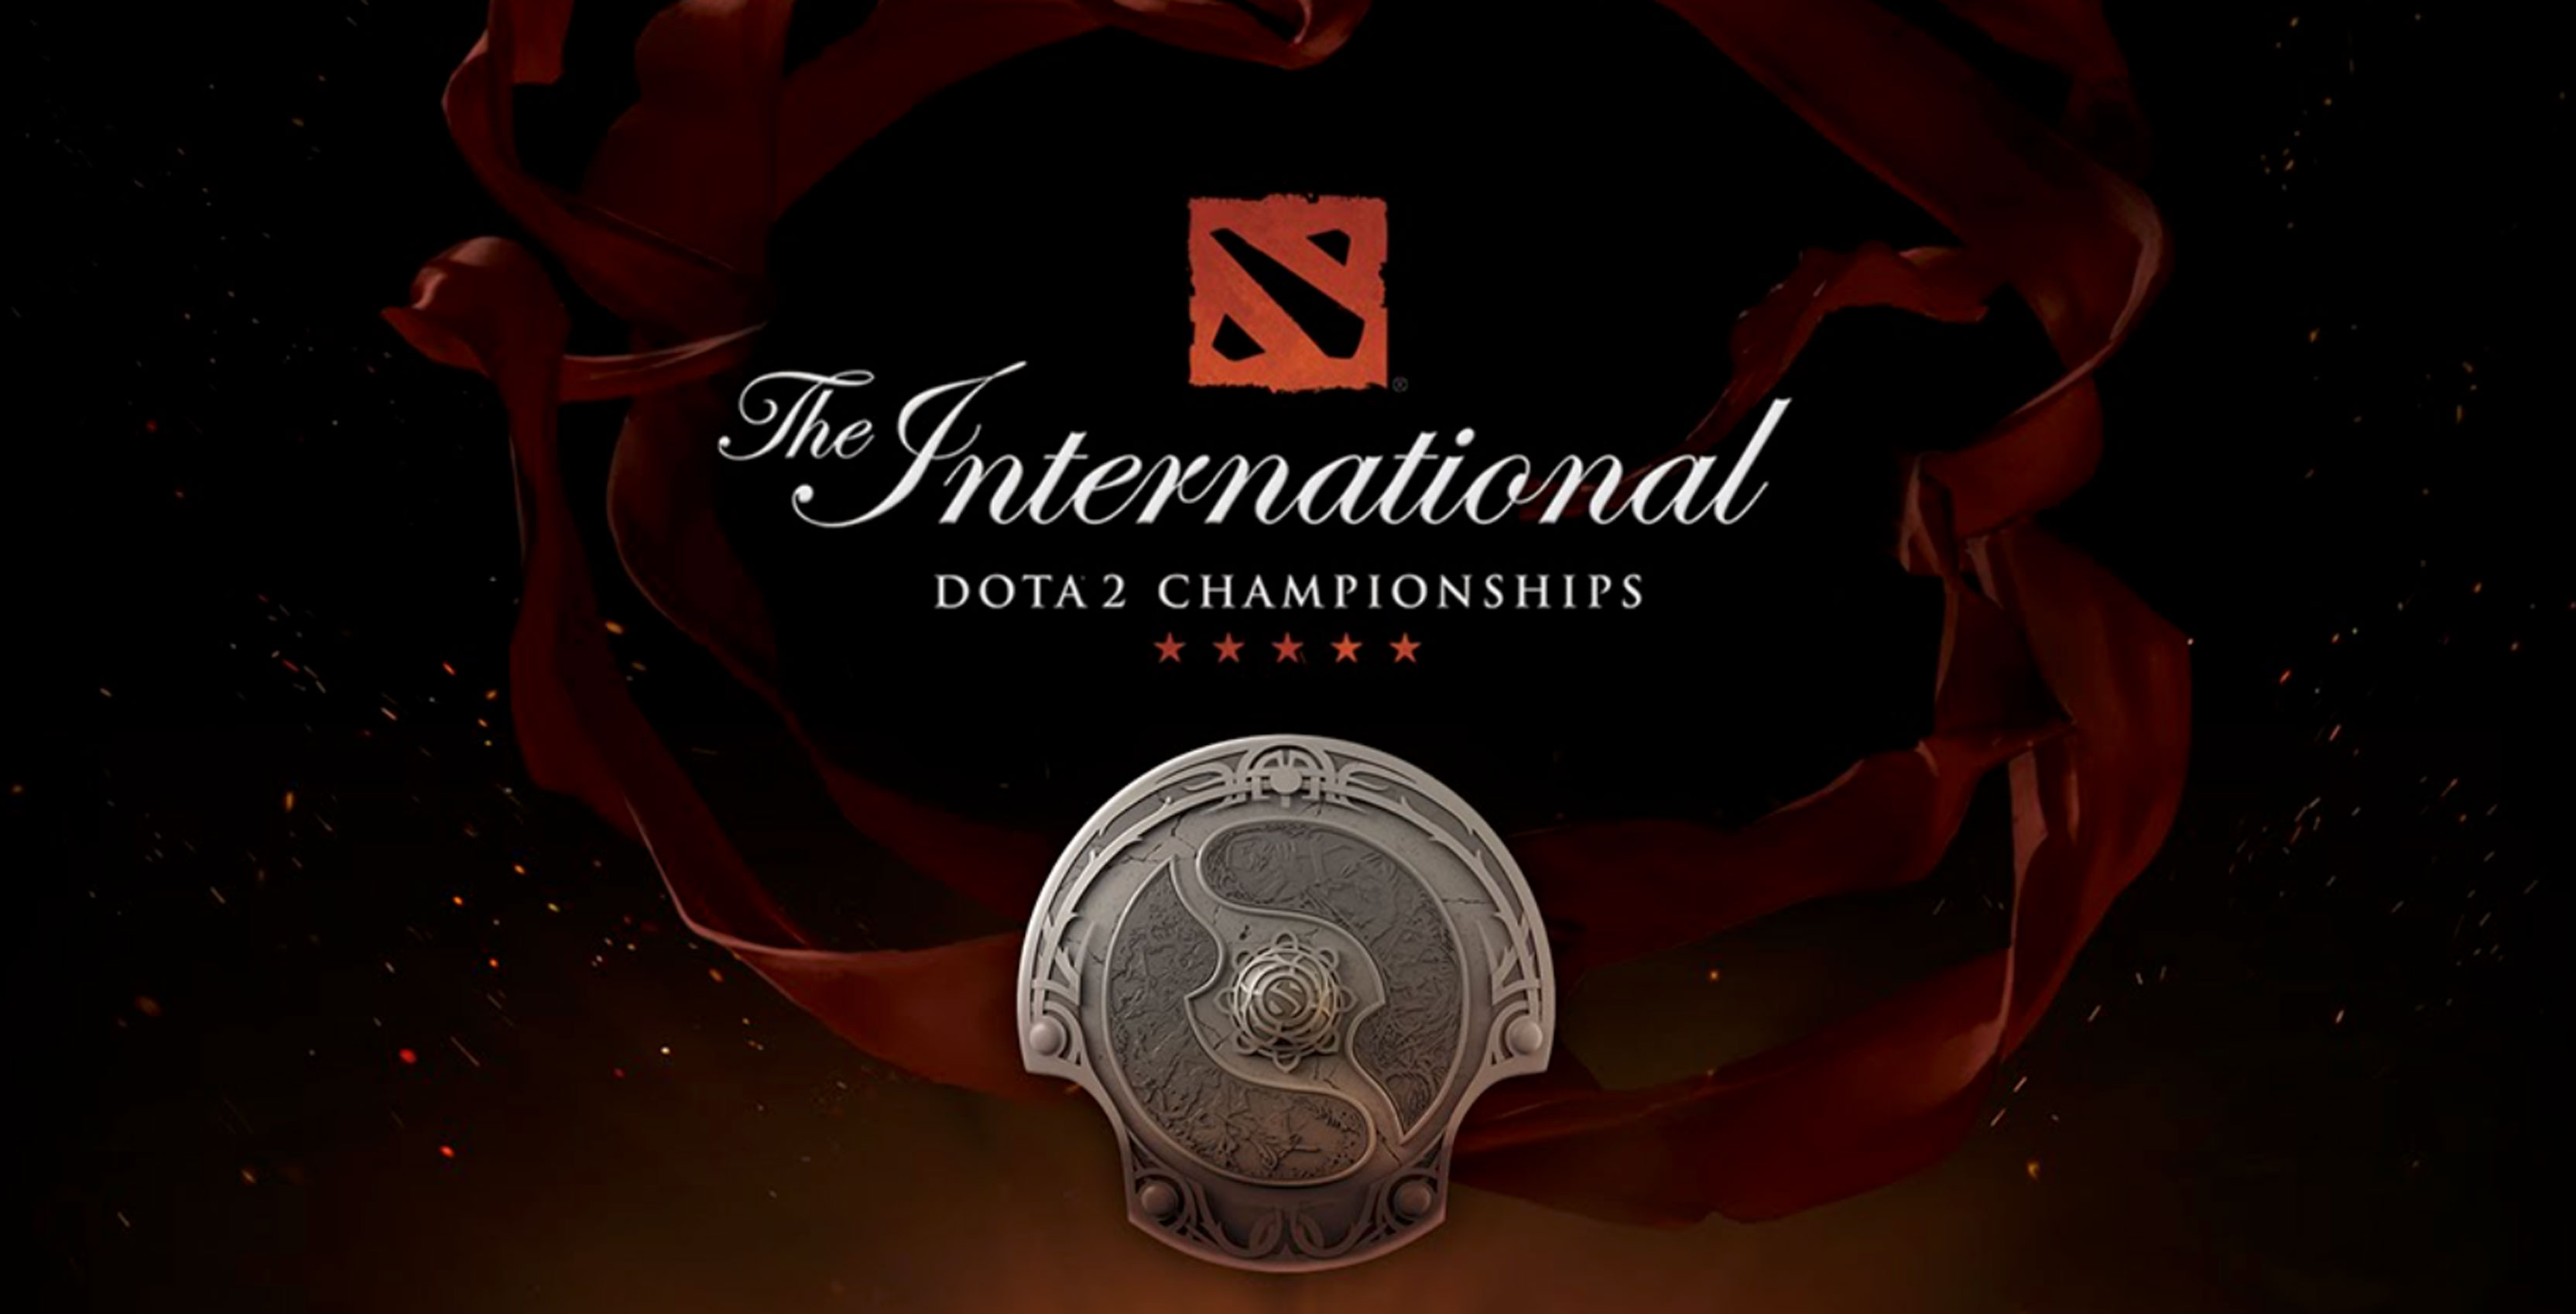 Dota 2's massive global tournament moved to Canada